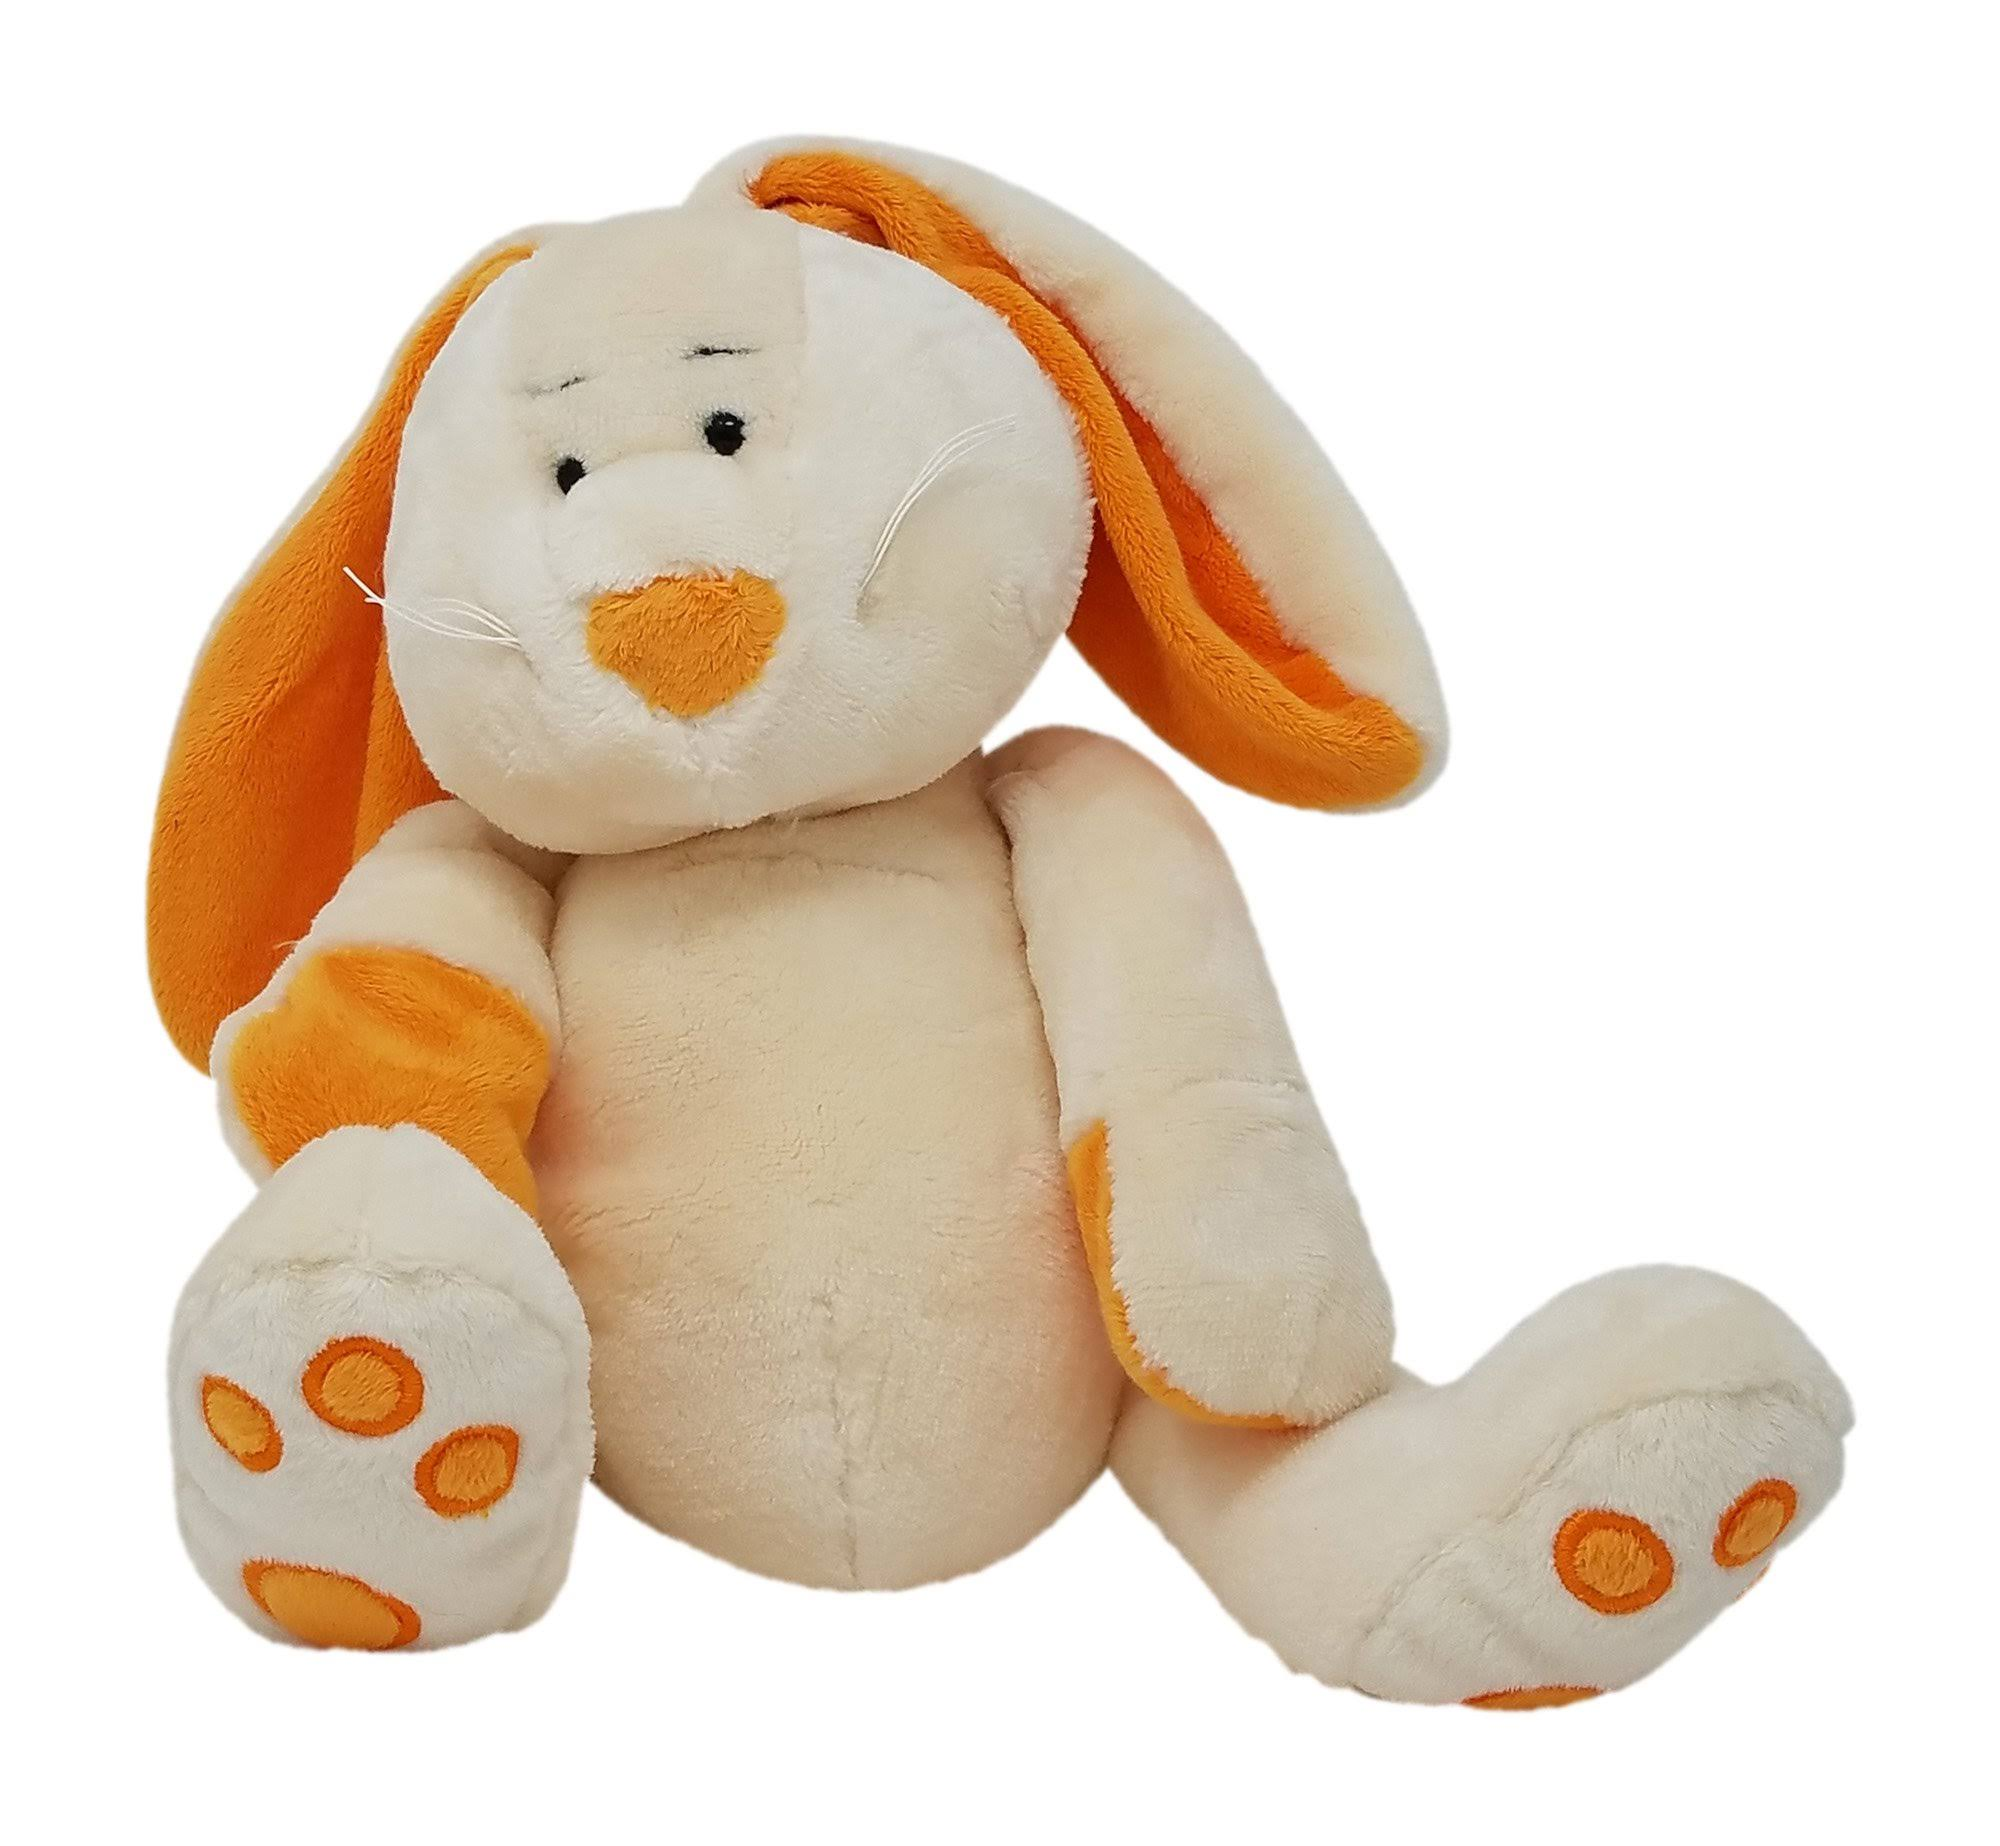 Ganz HE10200 Plush Bunny, Cream Plush